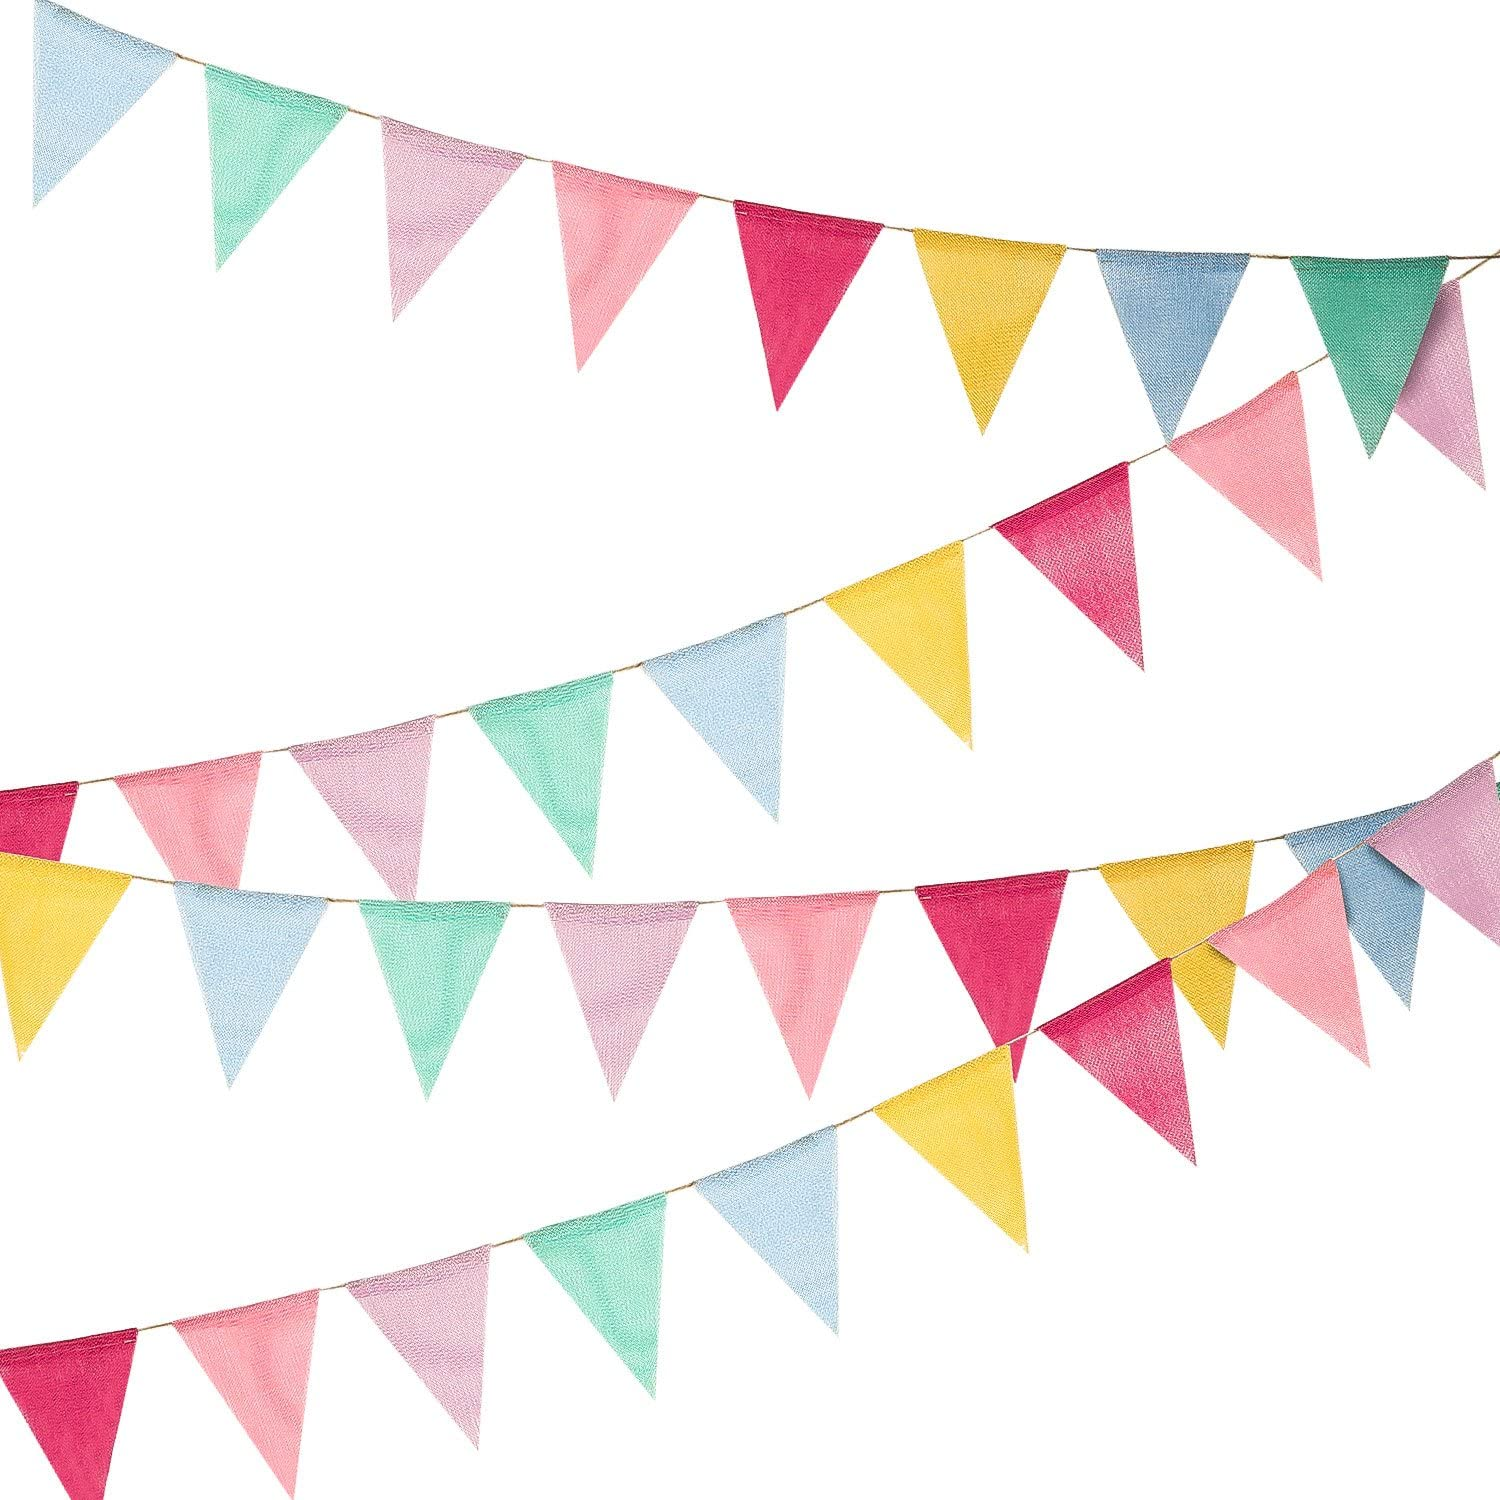 36 Flags Multicolored Pennant Flags Banner Imitated Burlap Bunting Banner Pastel Decor Fabric Triangle Flag for Party Decoration